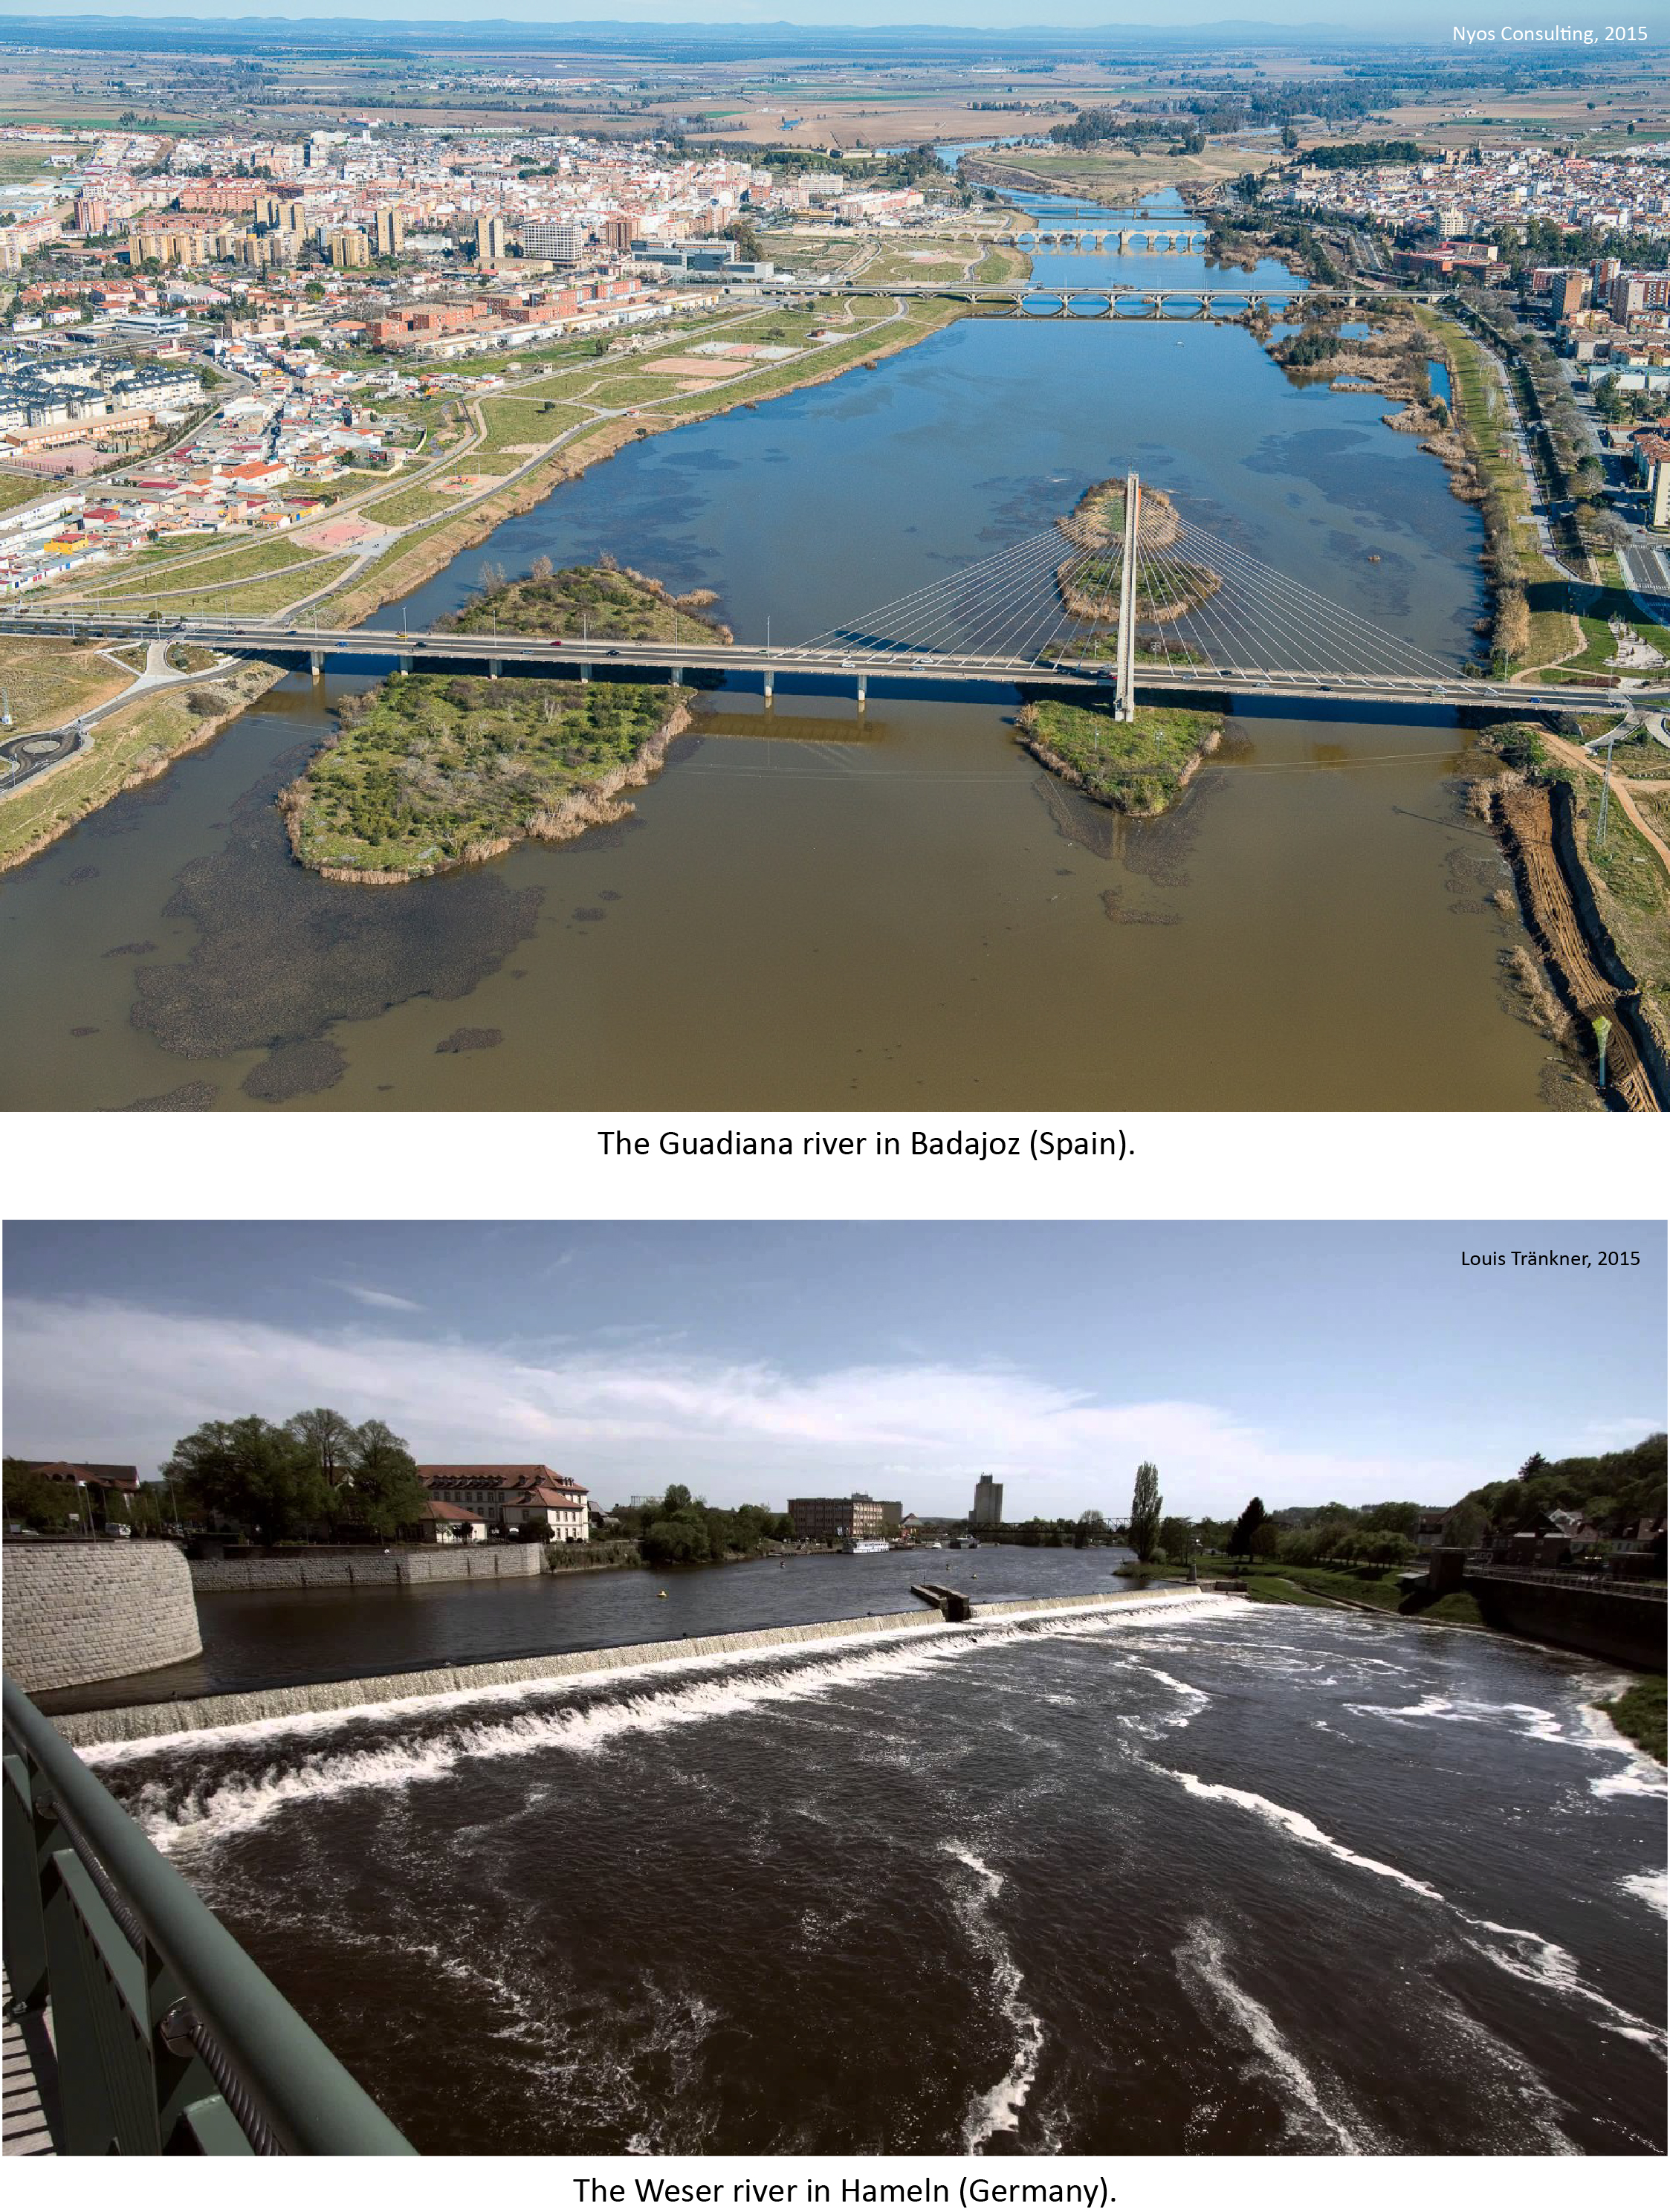 ventdouxprod nicolas barbier 2017 european union water polluters guadiana river weser river less than good ecological status water pollution toxic european union law